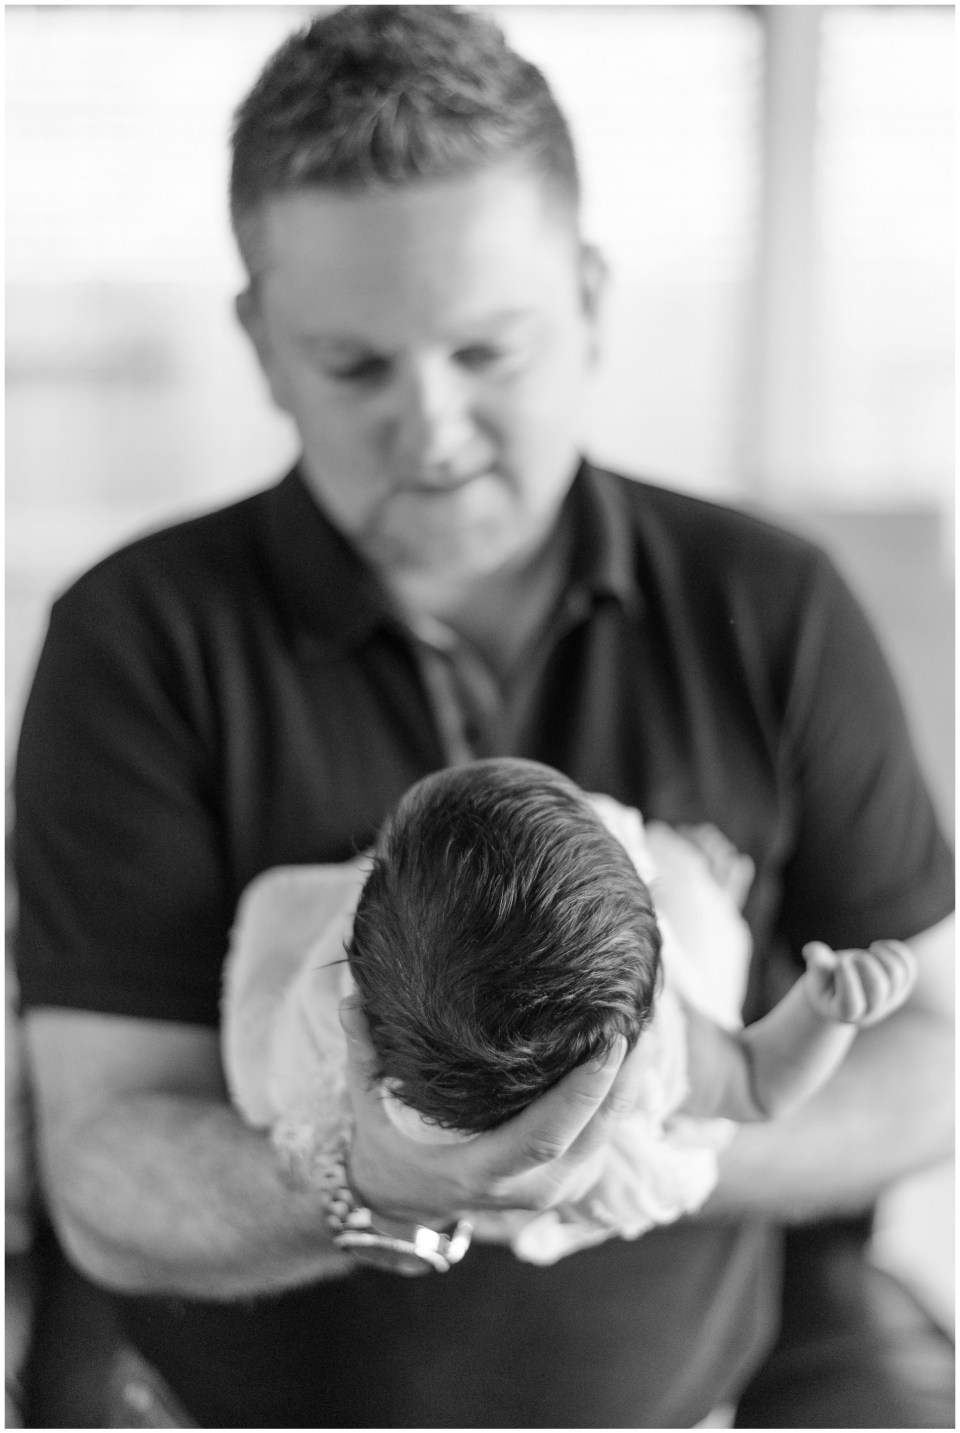 Kingwood family photographer images from an at-home newborn session with baby girl & her big sisterKingwood family photographer images from an at-home newborn session with baby boy & his big sisters